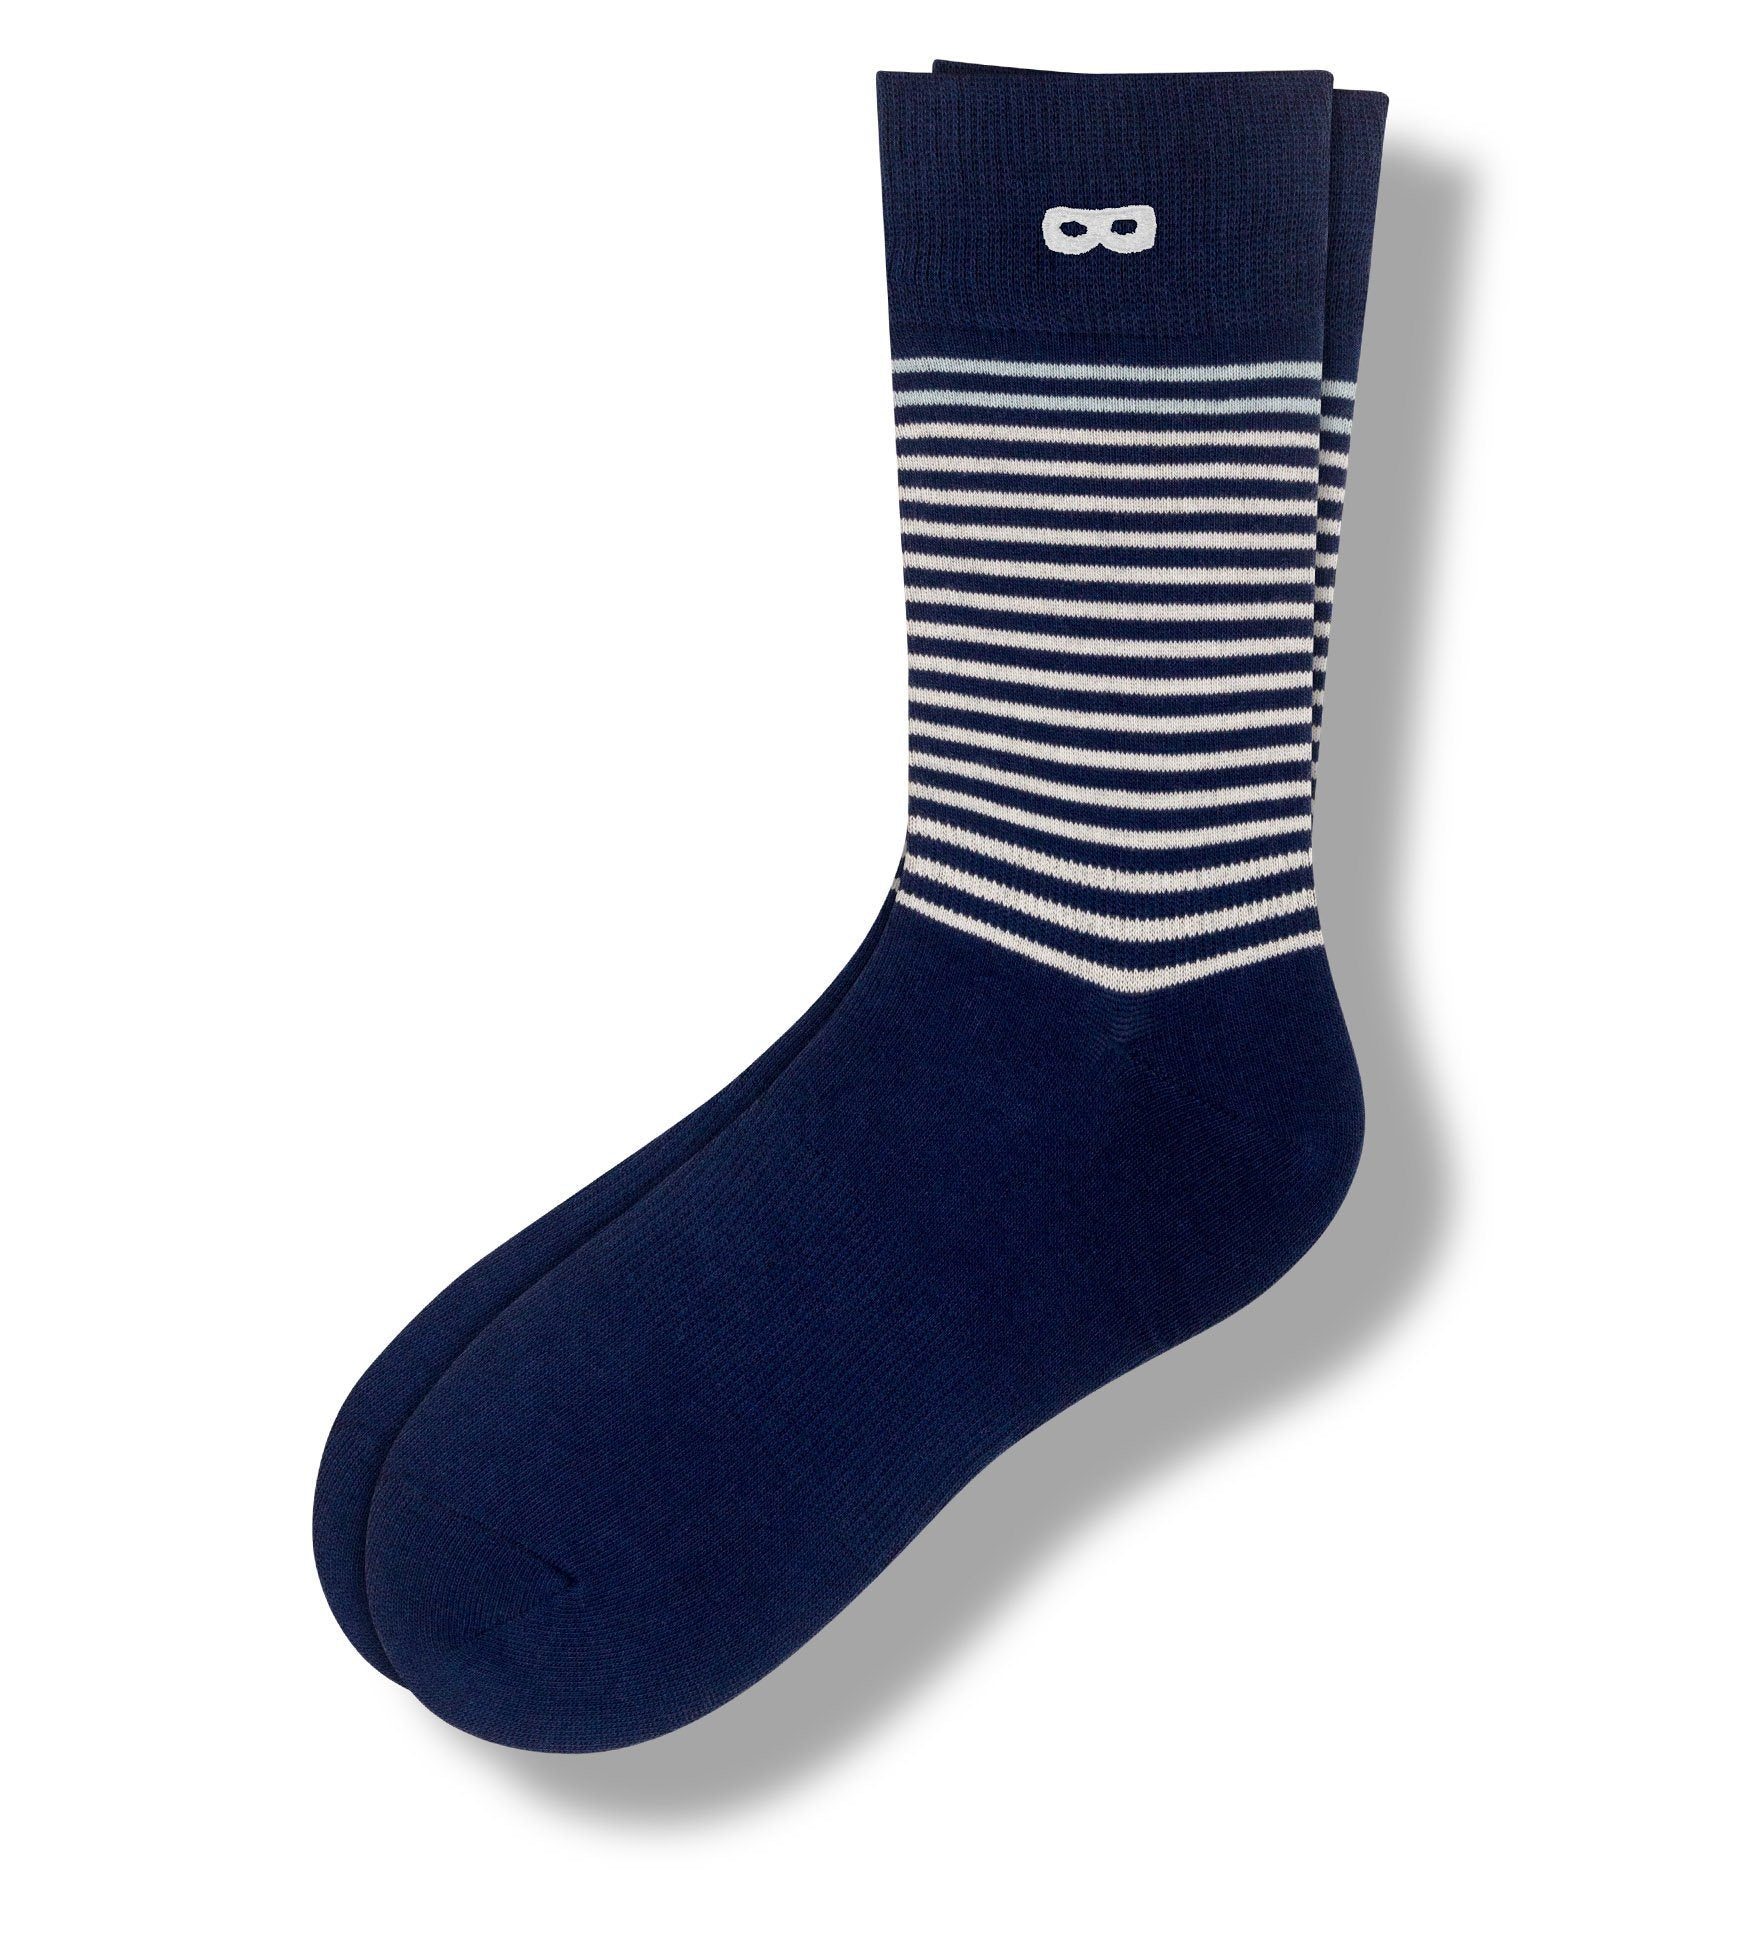 Ducks In A Row in Deep Navy Men's Crew Socks